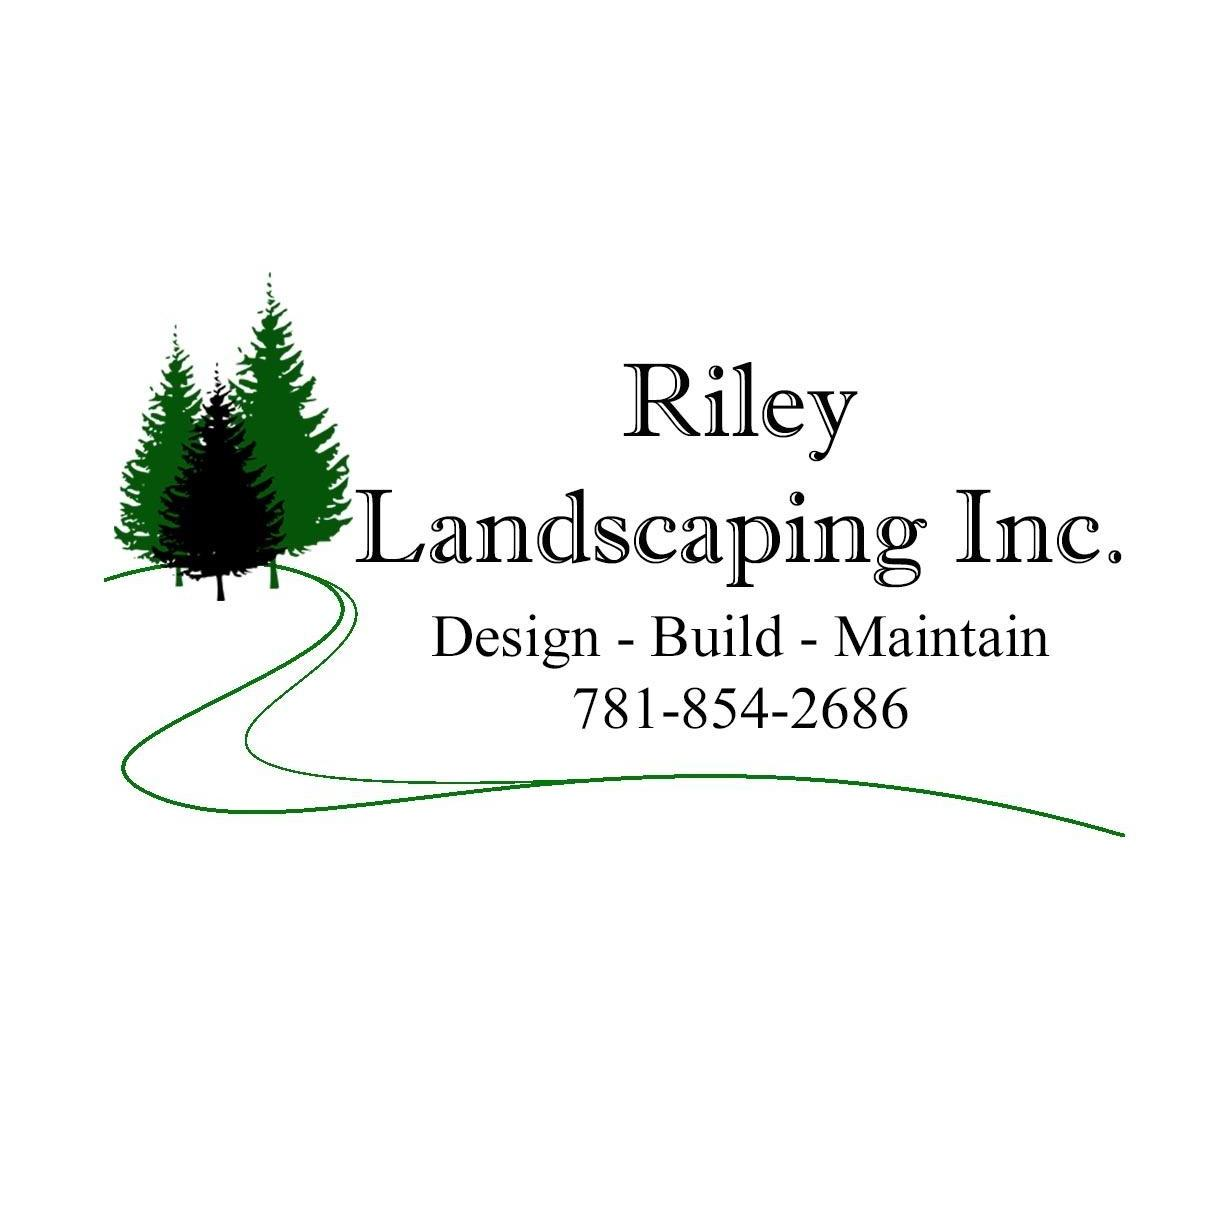 Riley Landscaping Inc.